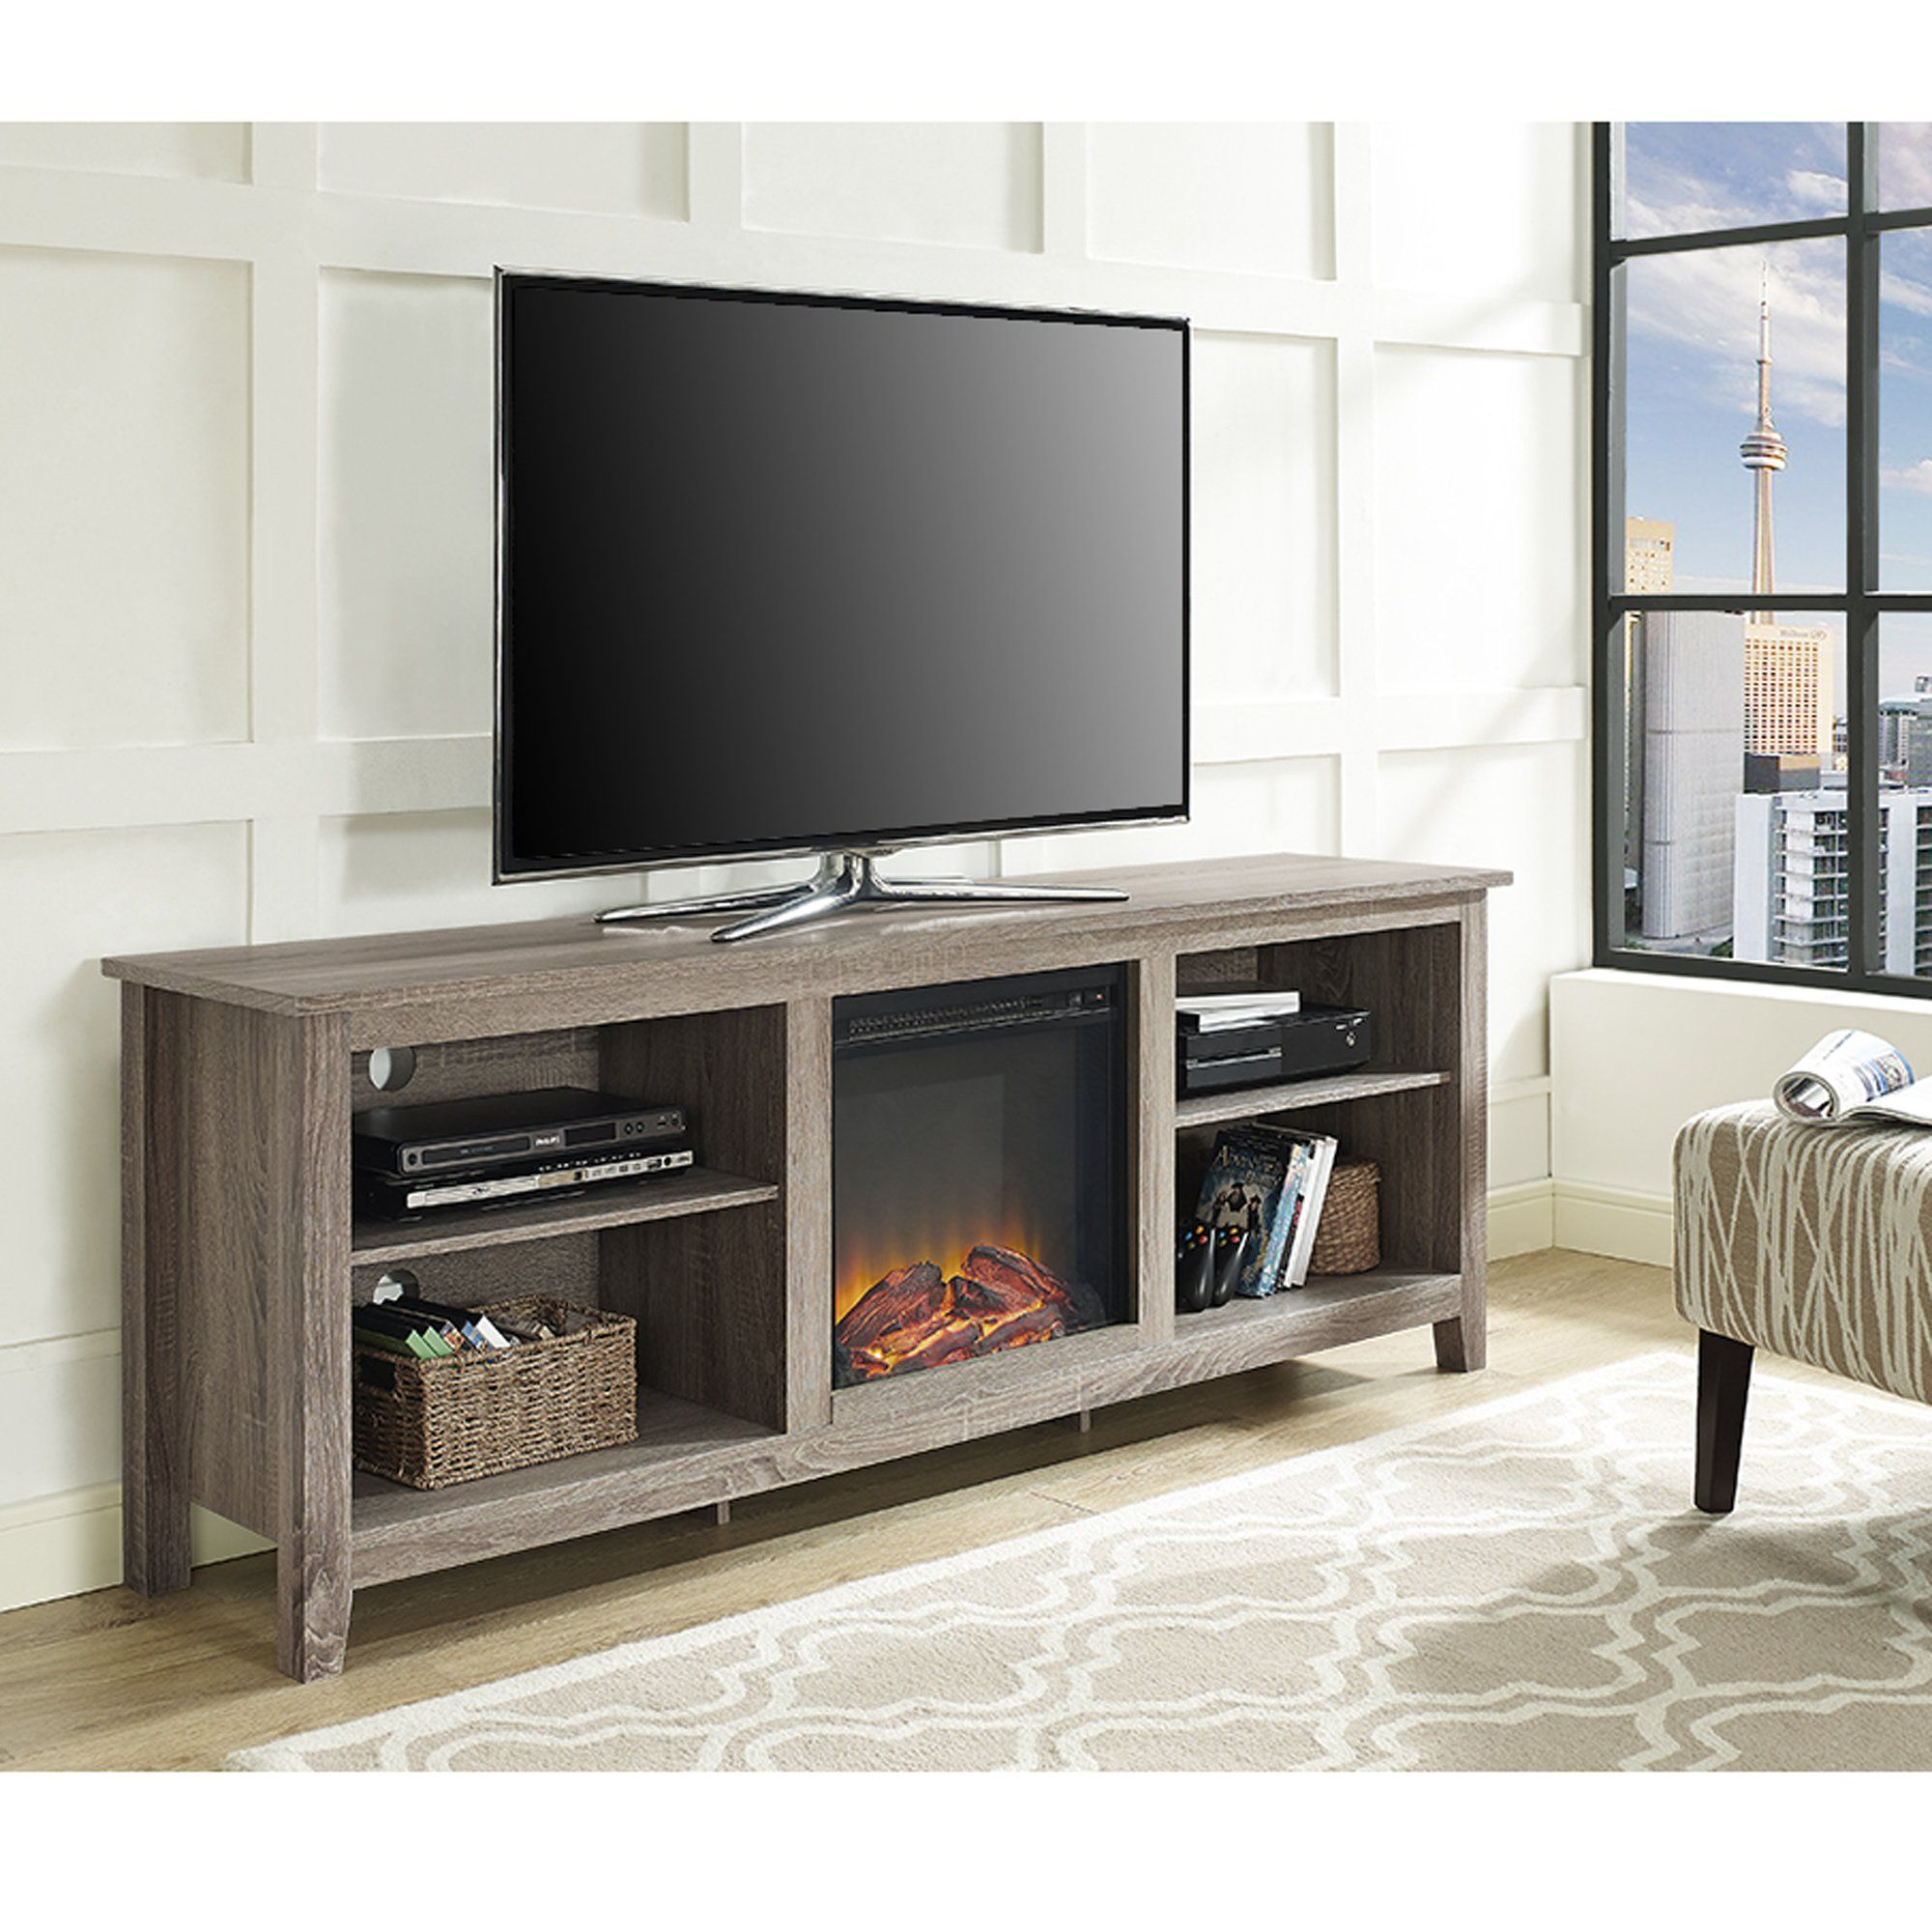 We Furniture Wood Tv Stand With Fireplace 70 Grey Fireplace Tv Stand Electric Fireplace Tv Stand Entertainment Center